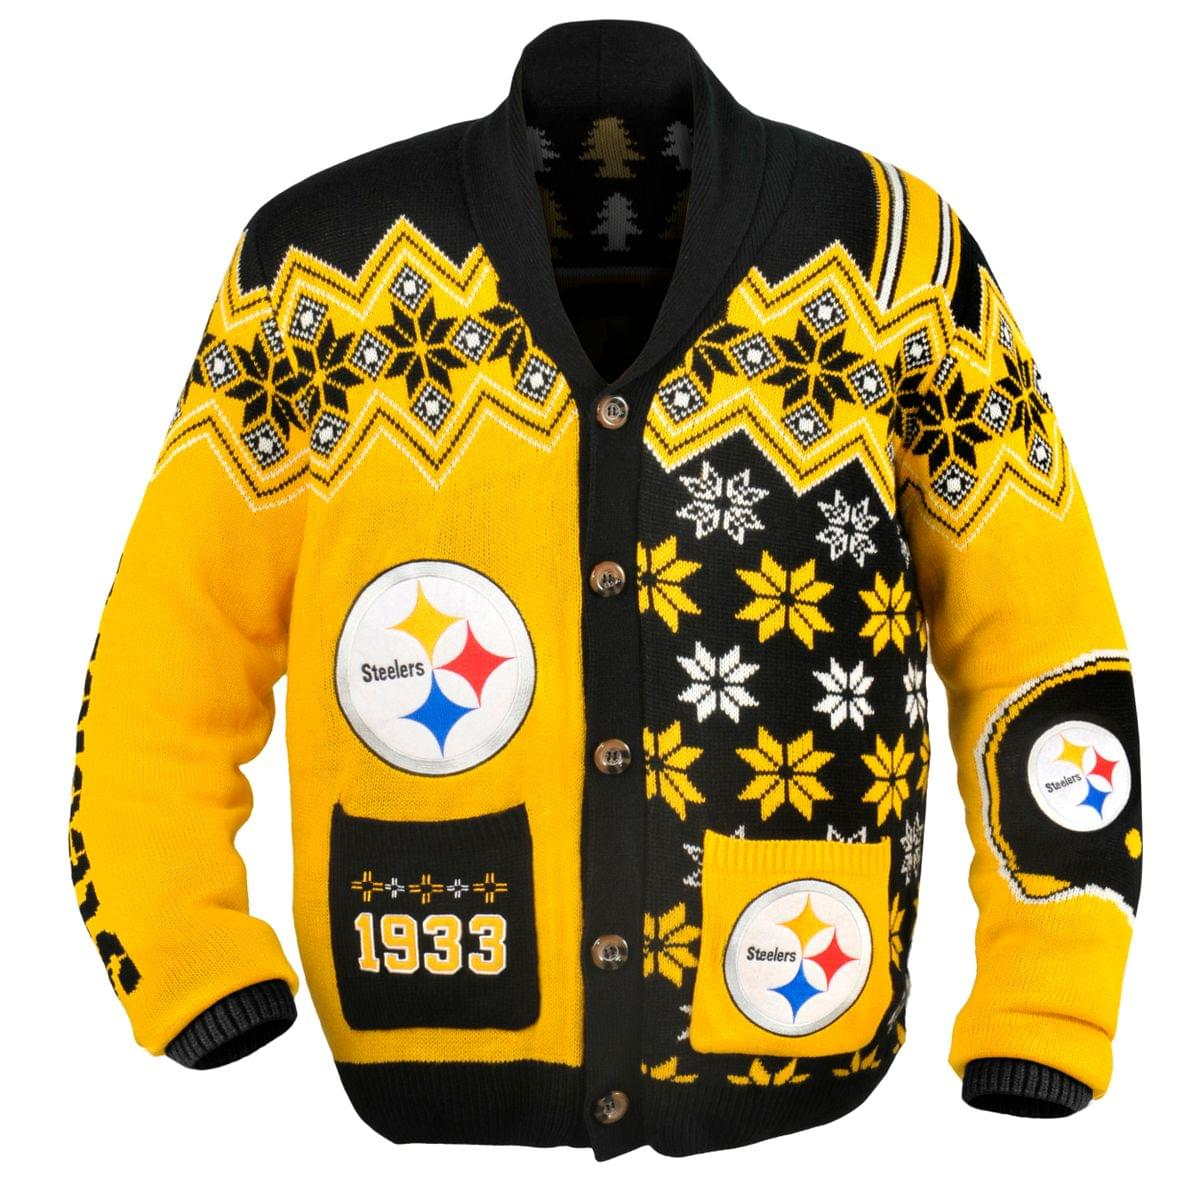 Pittsburgh Steelers NFL Adult Ugly Cardigan Sweater Medium ... 8c84840d2